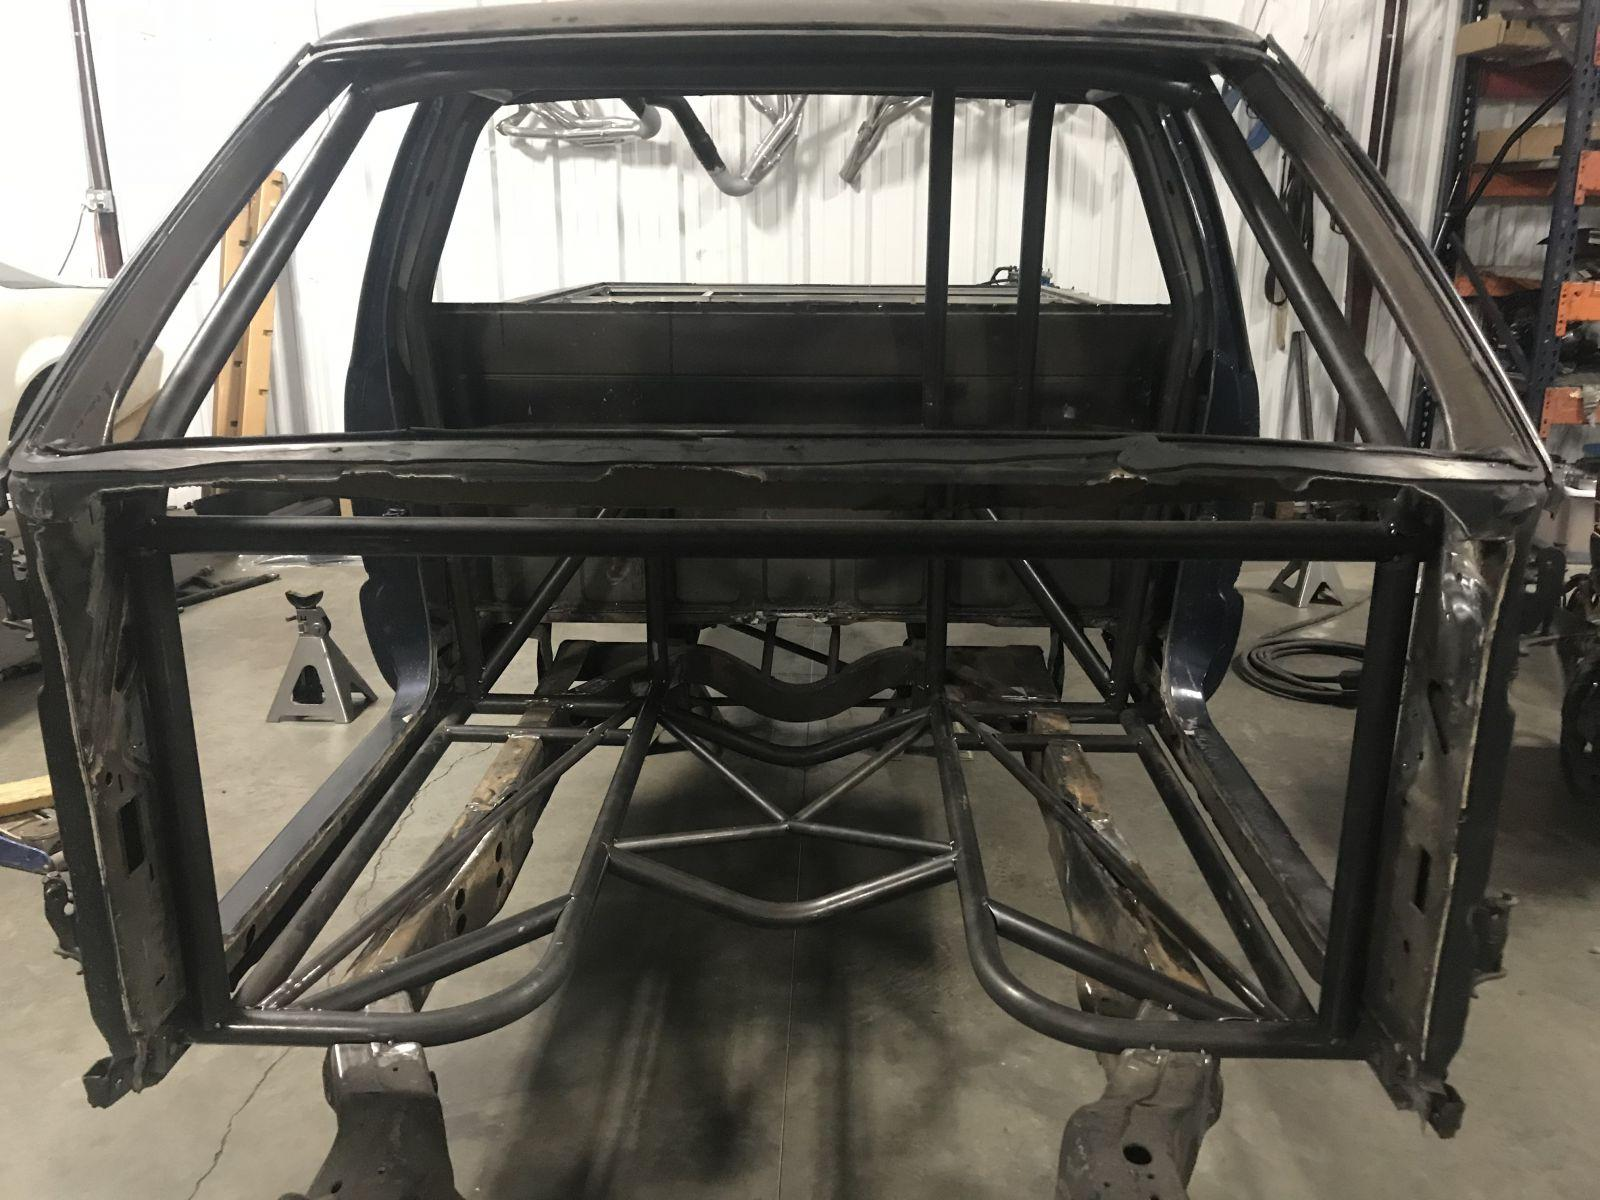 2nd Gen 25 5 build - Projects - S10Racer